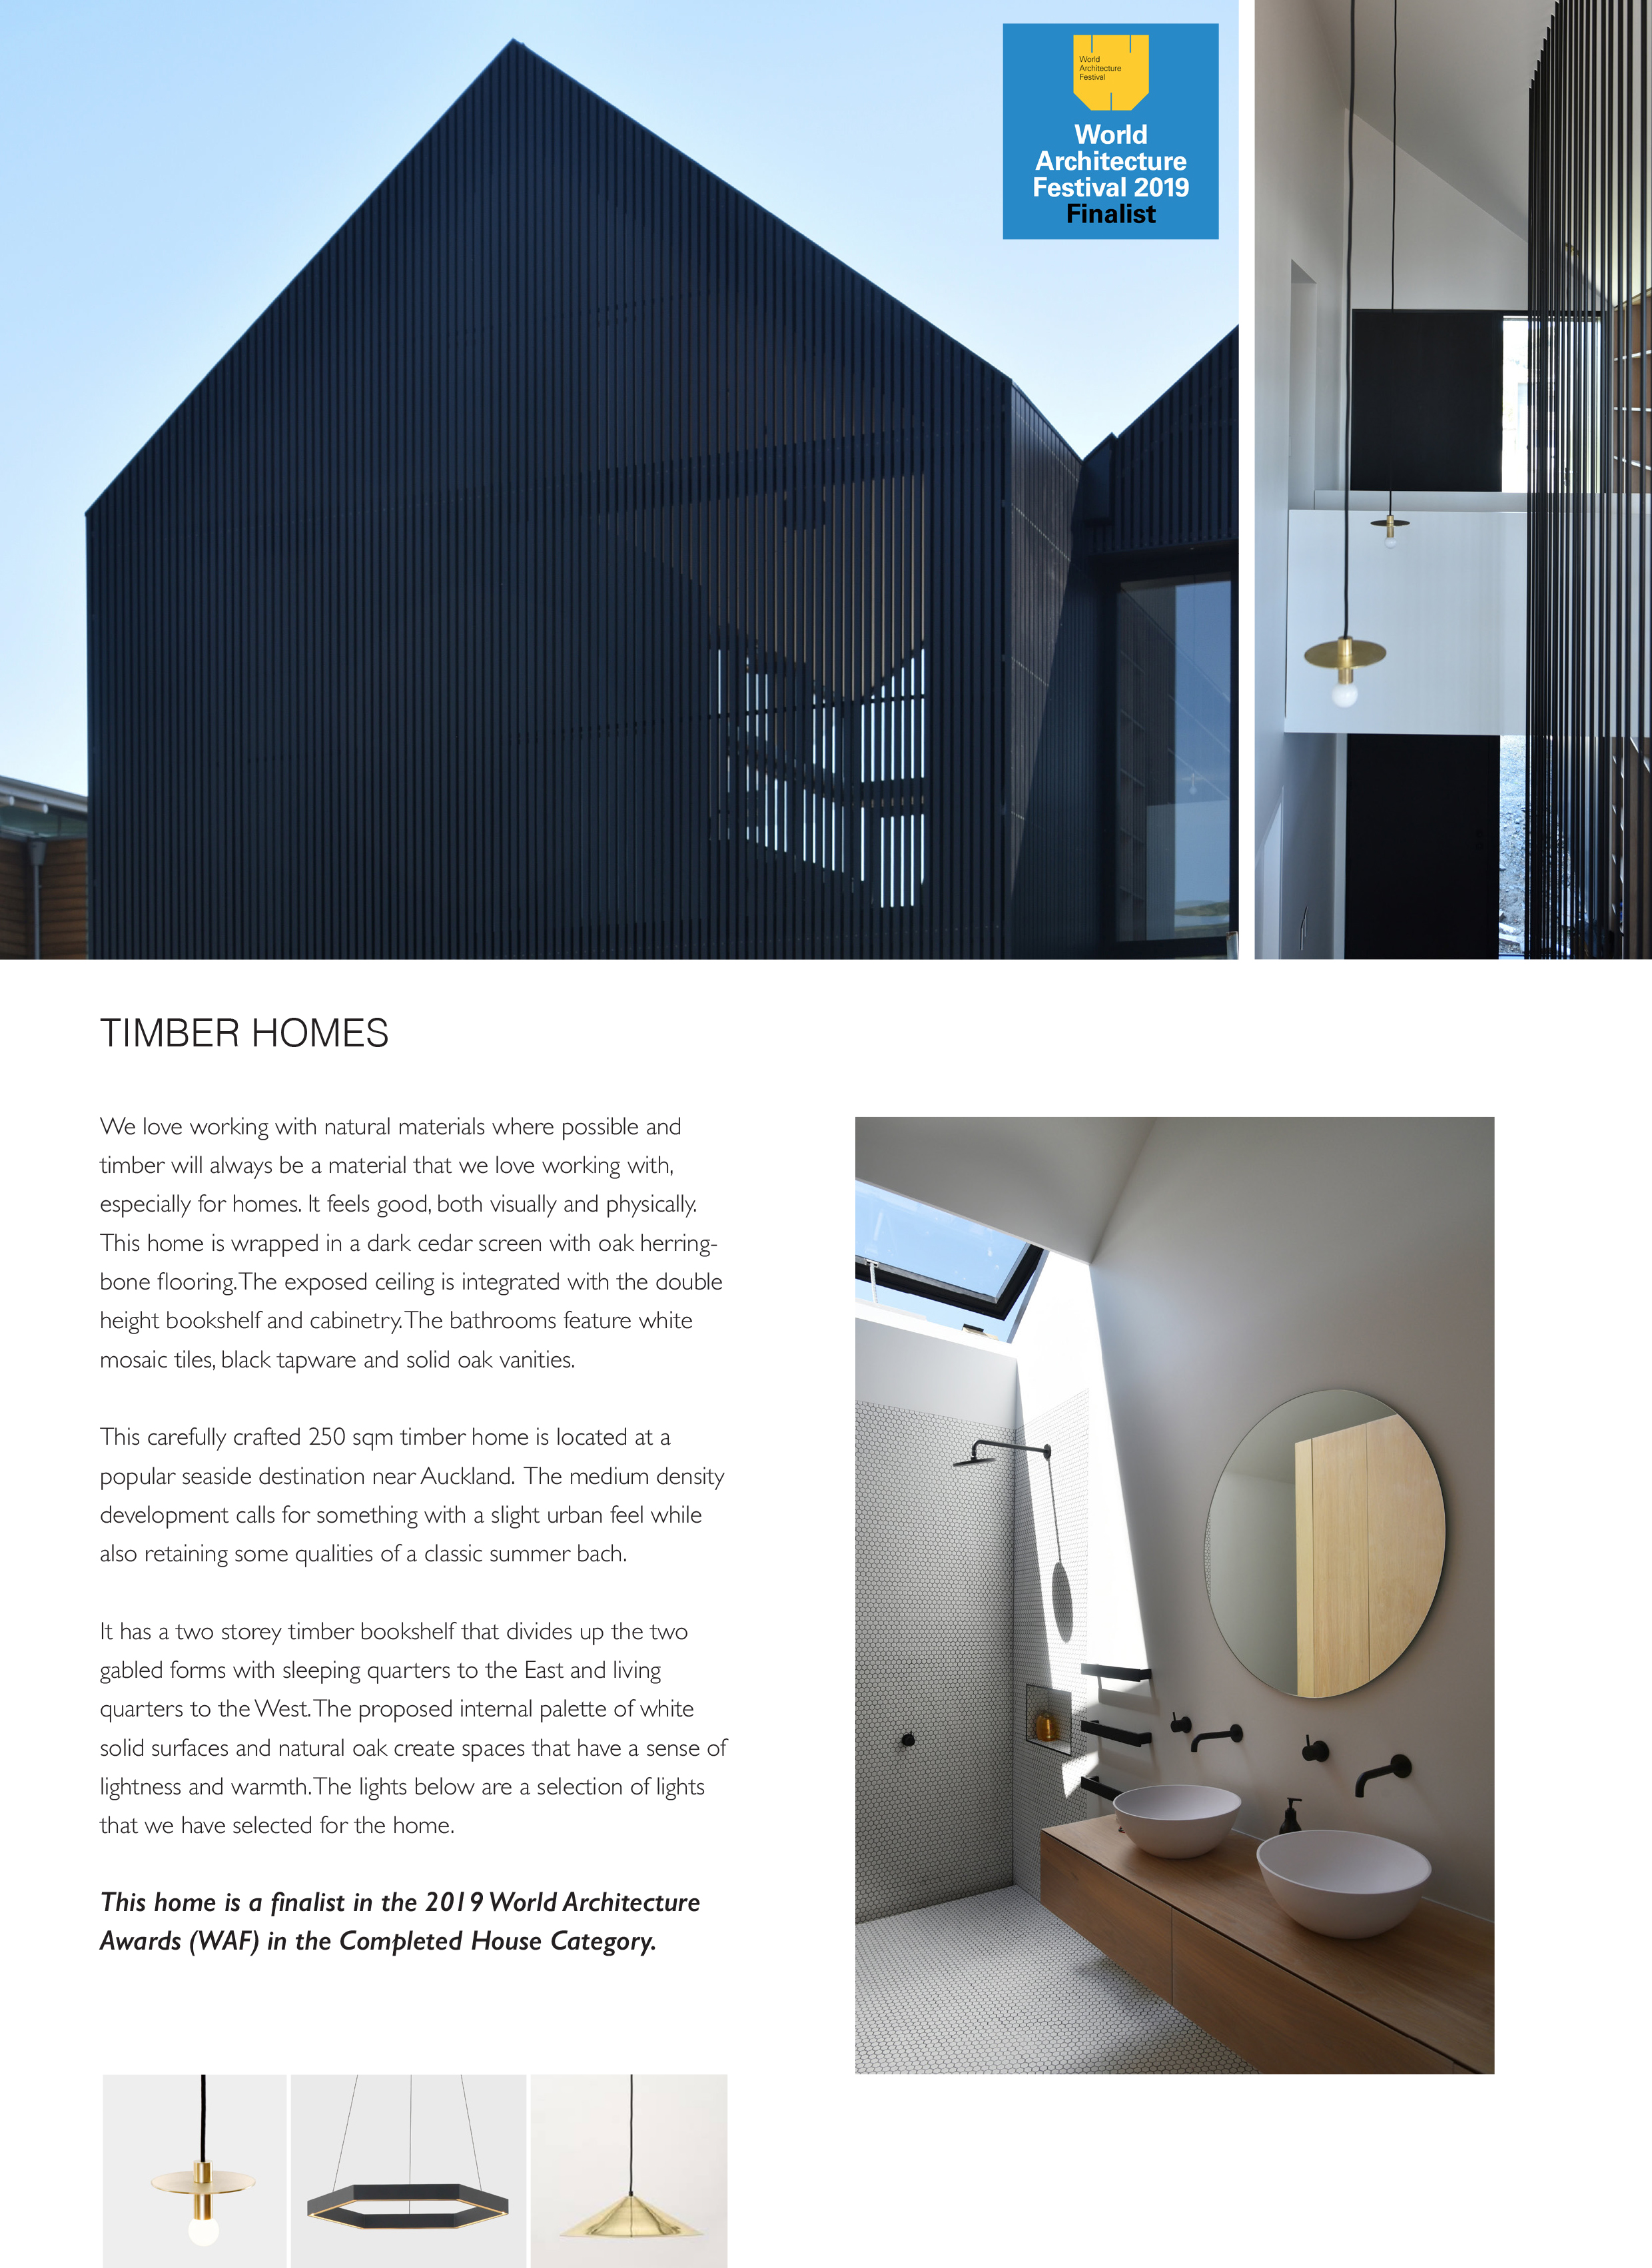 Atelier Aitken Home Design - Black wood house - The Elegant Boatshed pg 2.jpg